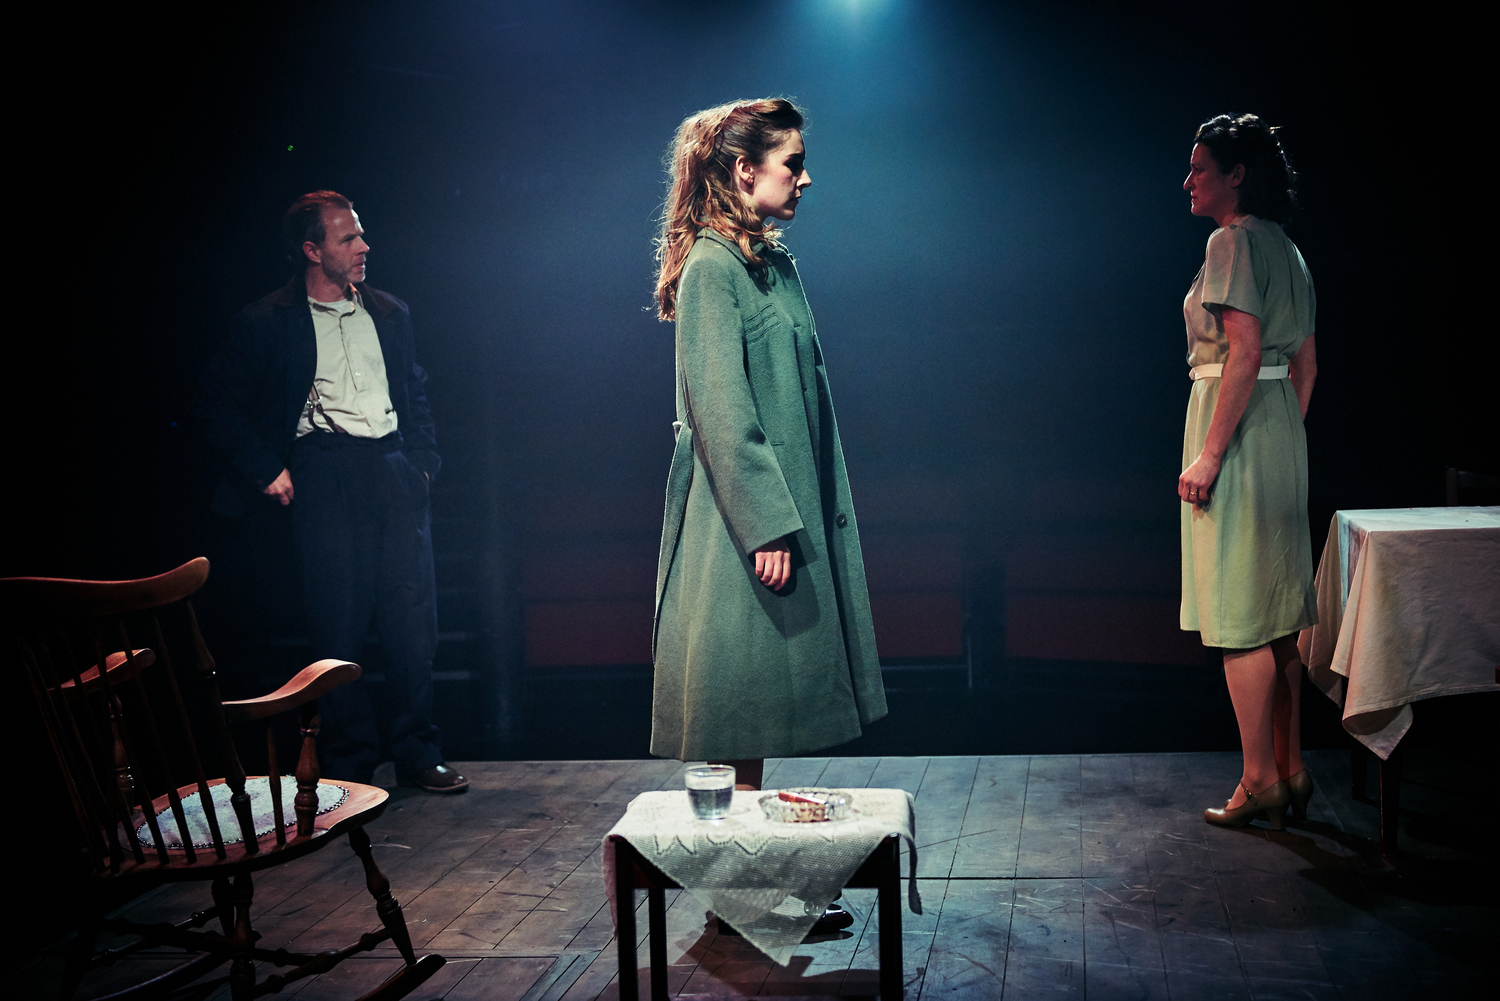 BWW Review: A VIEW FROM THE BRIDGE, Tobacco Factory Theatres